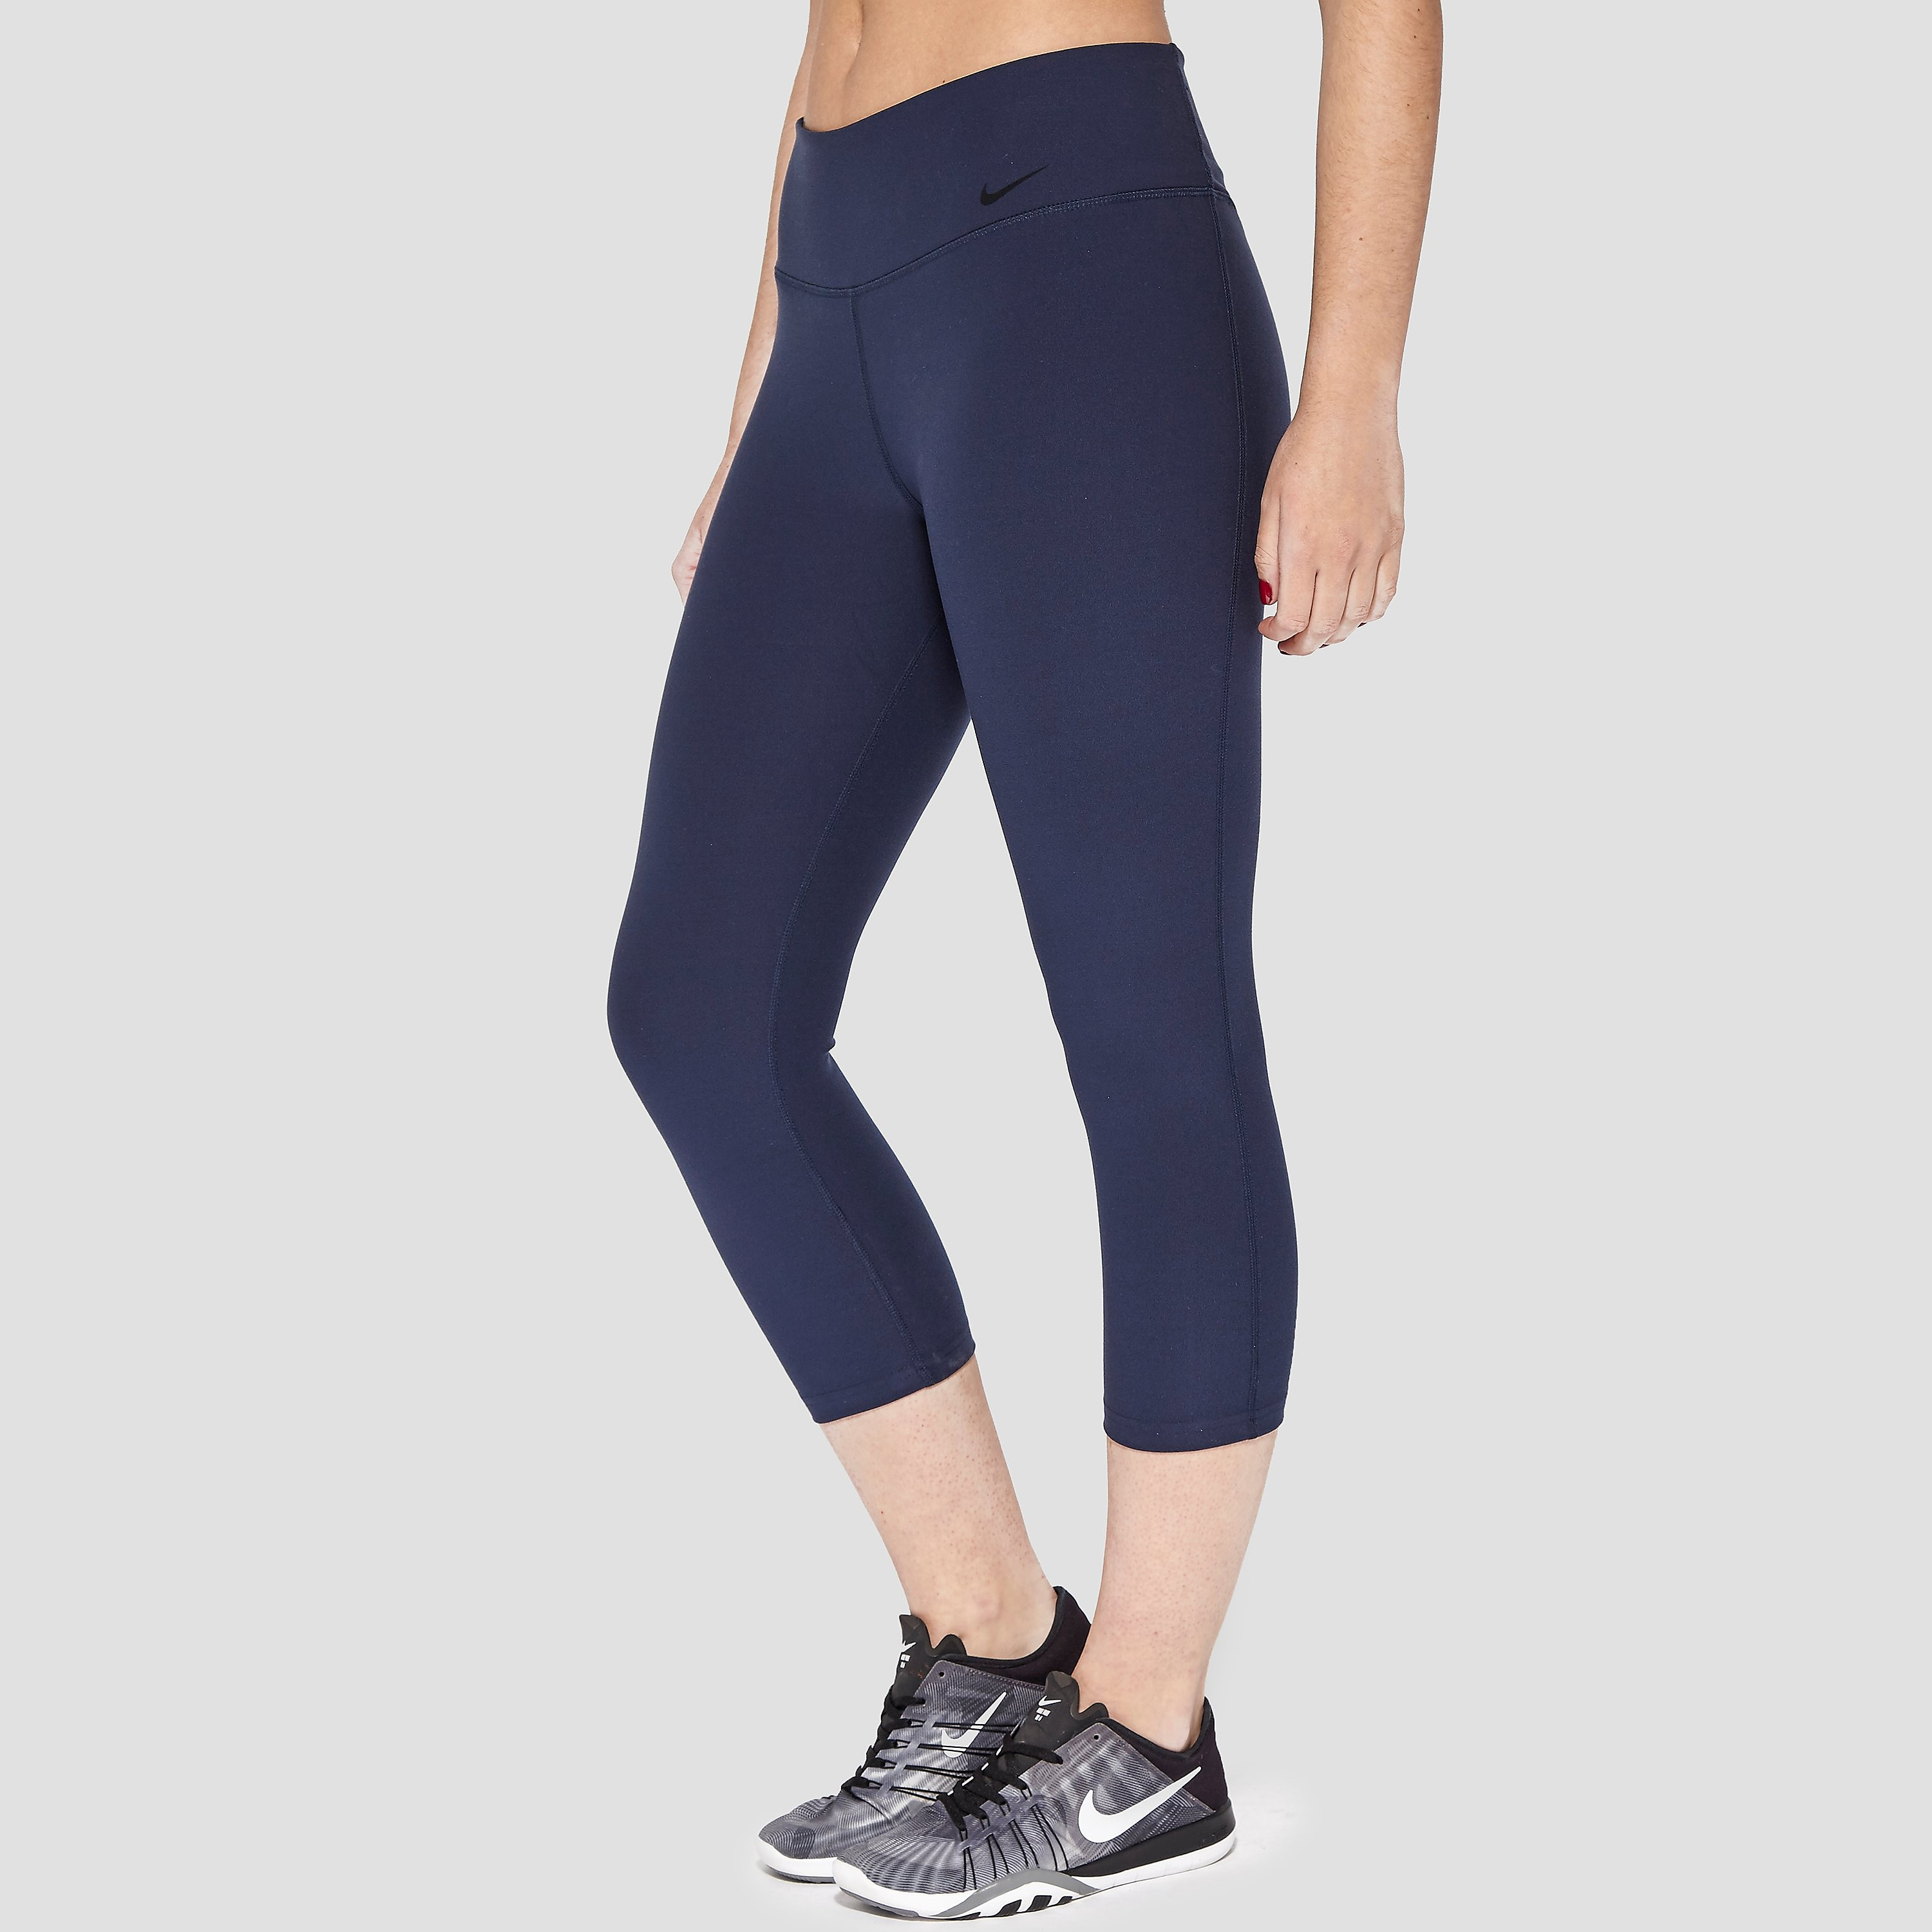 Nike Women's Legend 2.0 Tight Poly Training Capris